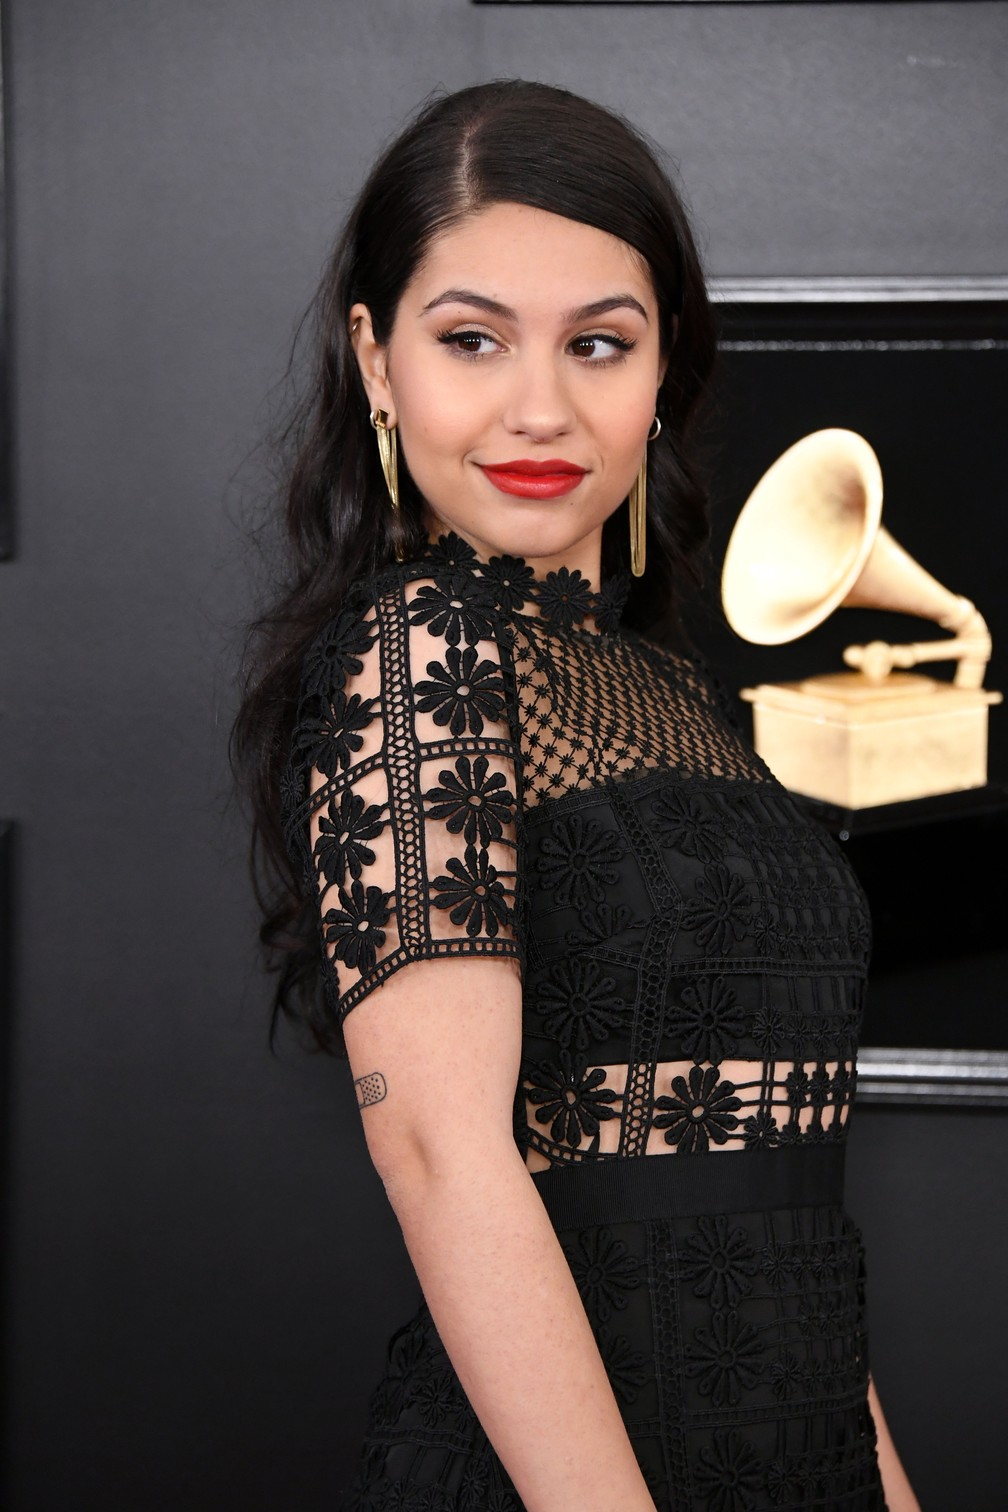 A cantora Alessia Cara no 61º Grammy, em Los Angeles — Foto: Jon Kopaloff/Getty Images/AFP